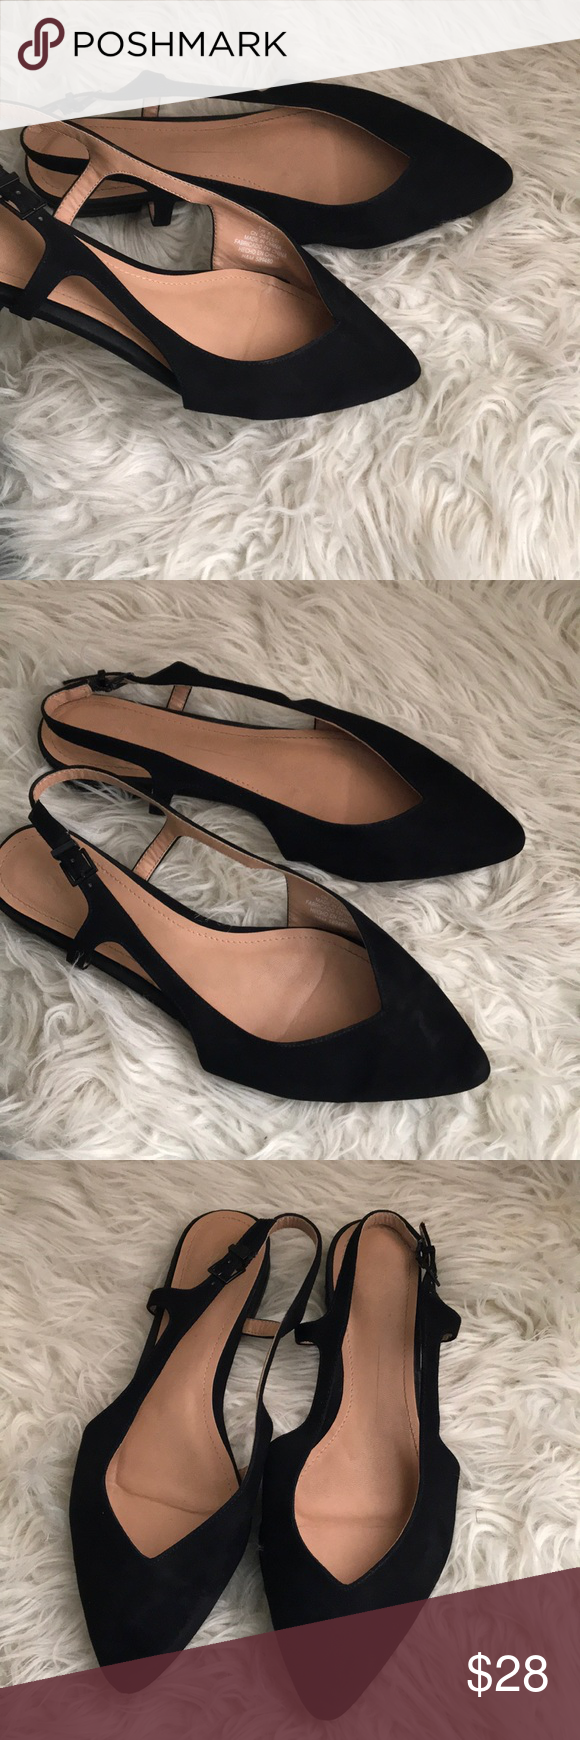 H M Sling Back Flats Shoes Pointed Toe Sz 8 5 Pointed Toe Shoes Pointed Flats Shoes Shoes